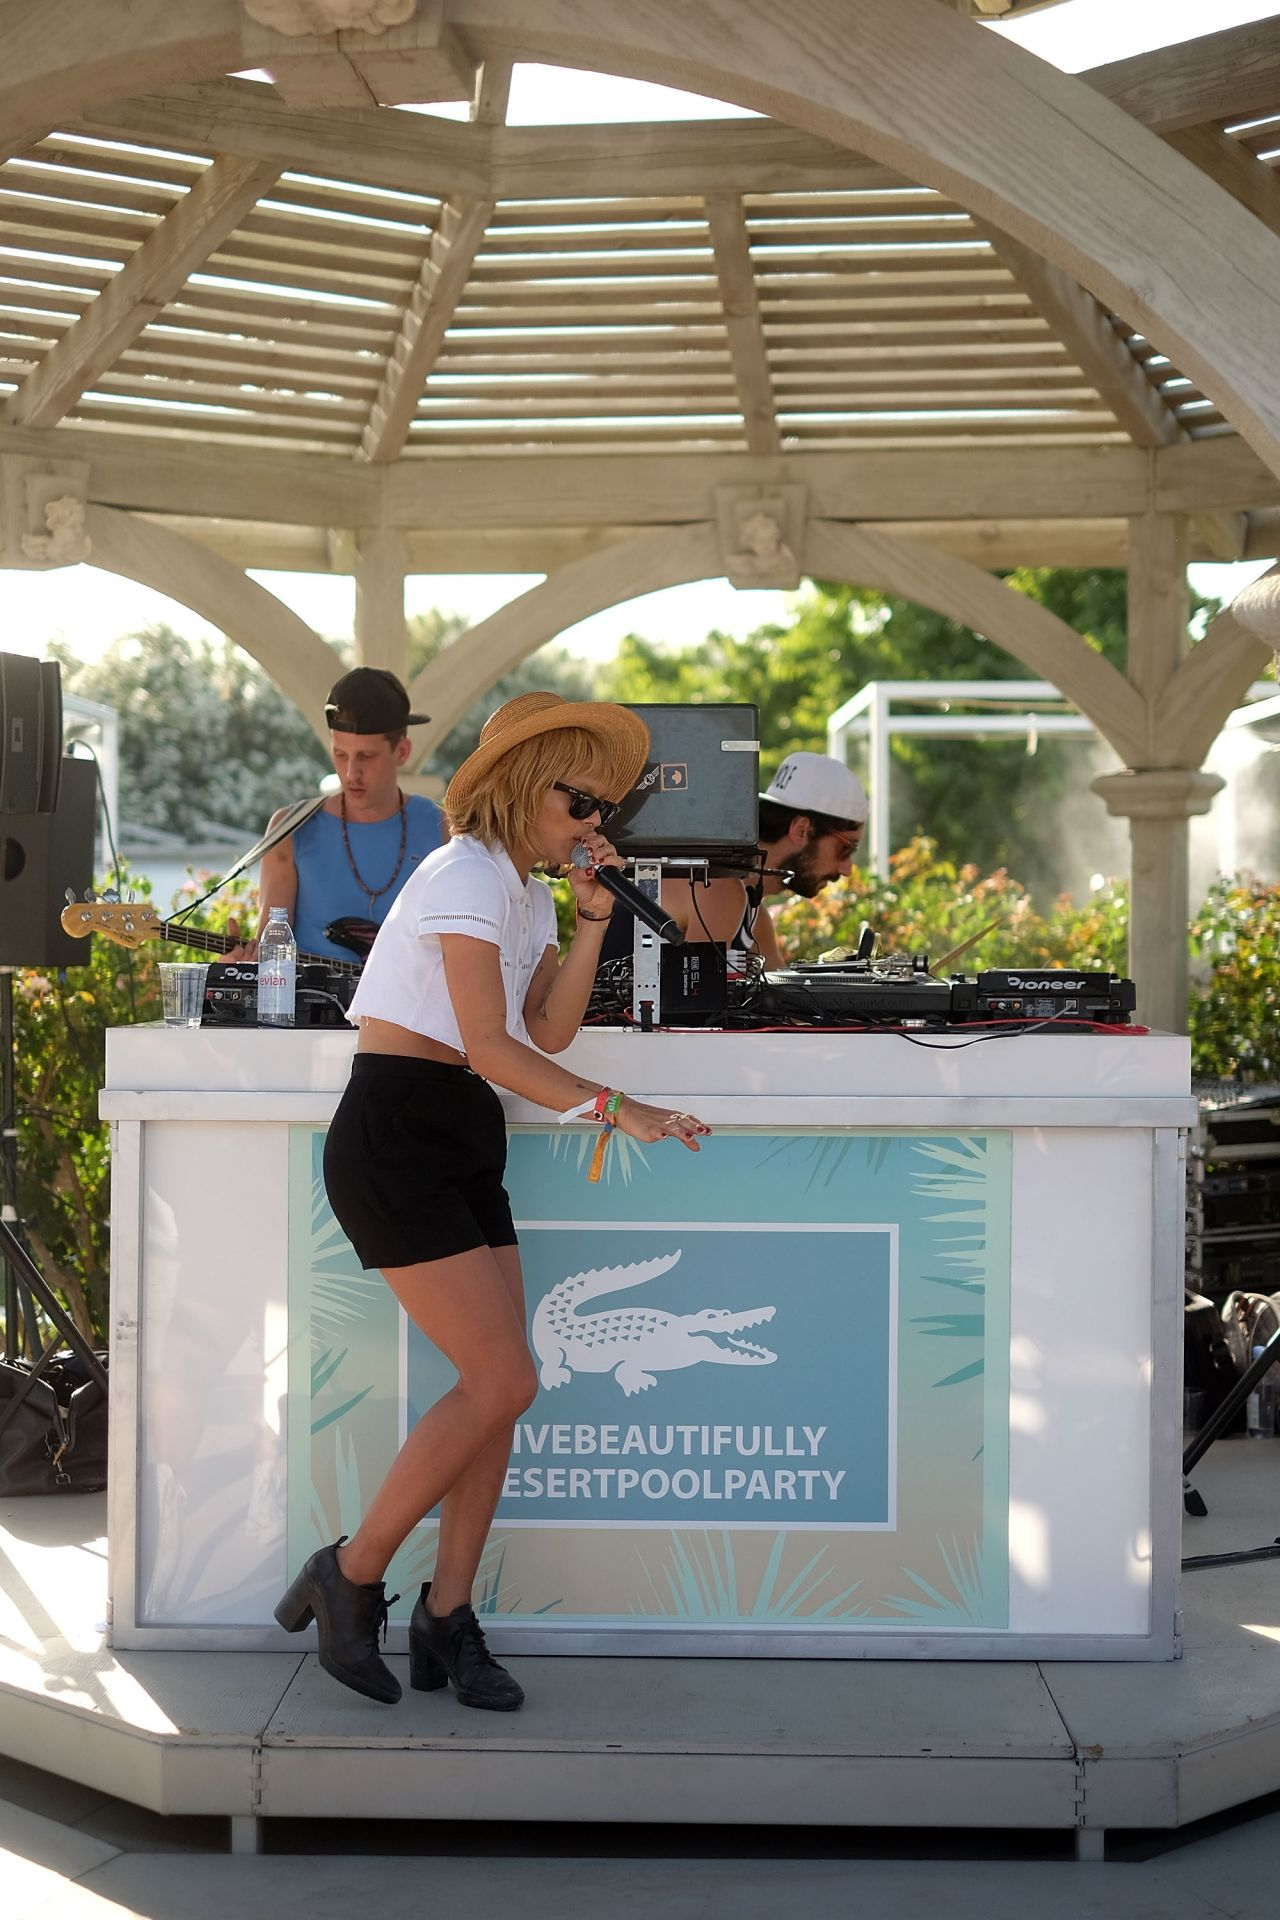 Zoe Kravitz - LACOSTE Beautiful Desert Pool Party - April 2014